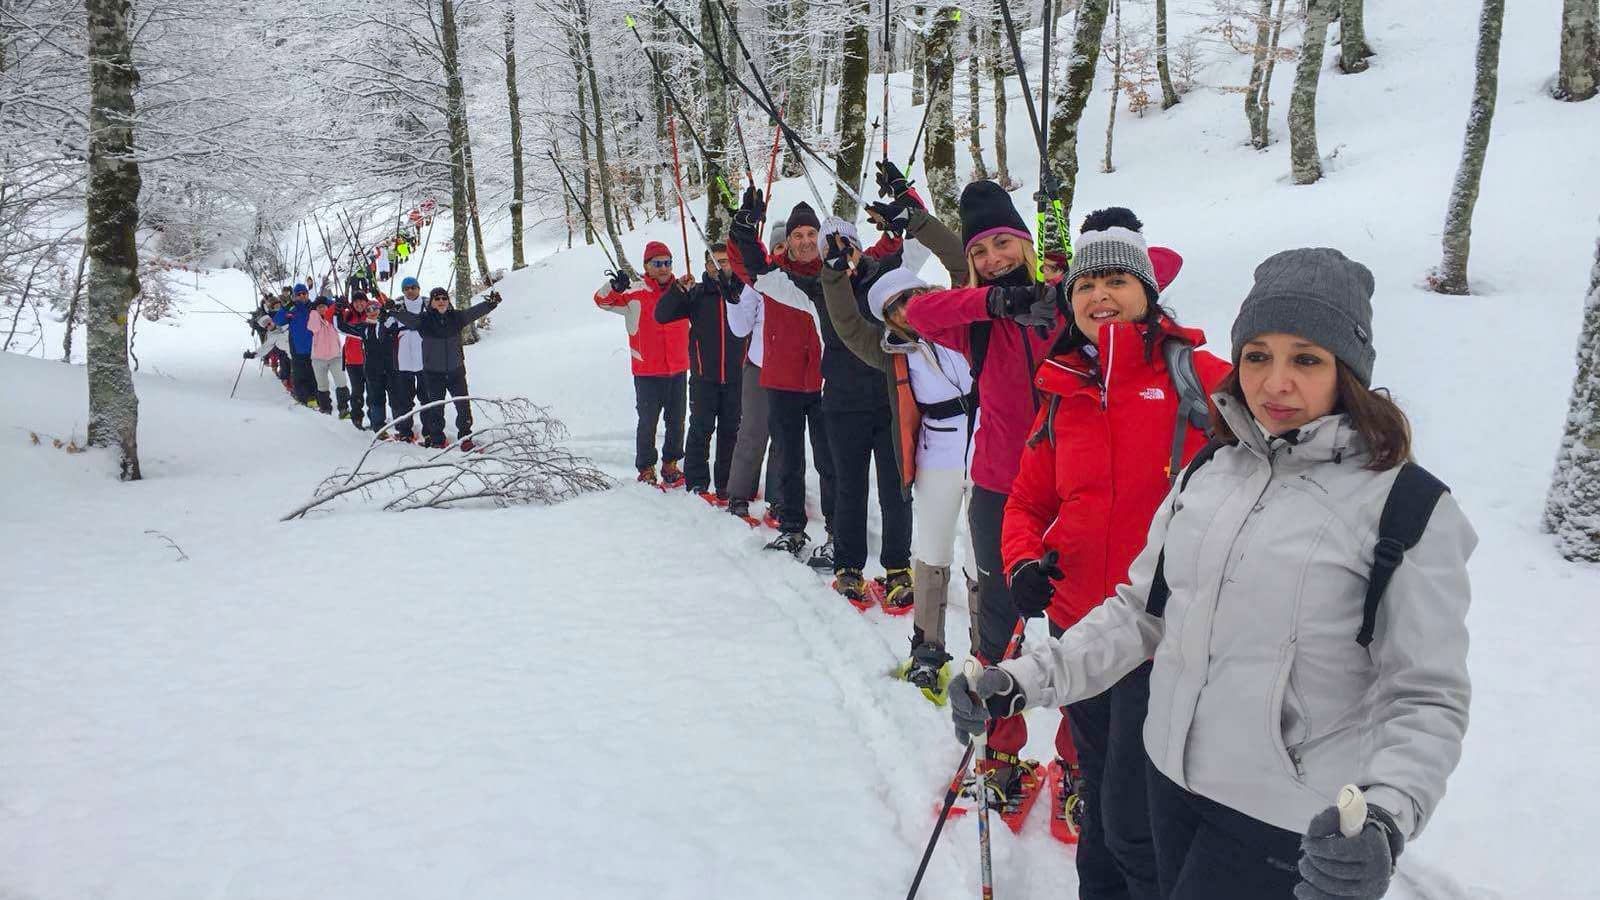 16-17 febbraio: Winter Nordic Walking a Camporotondo